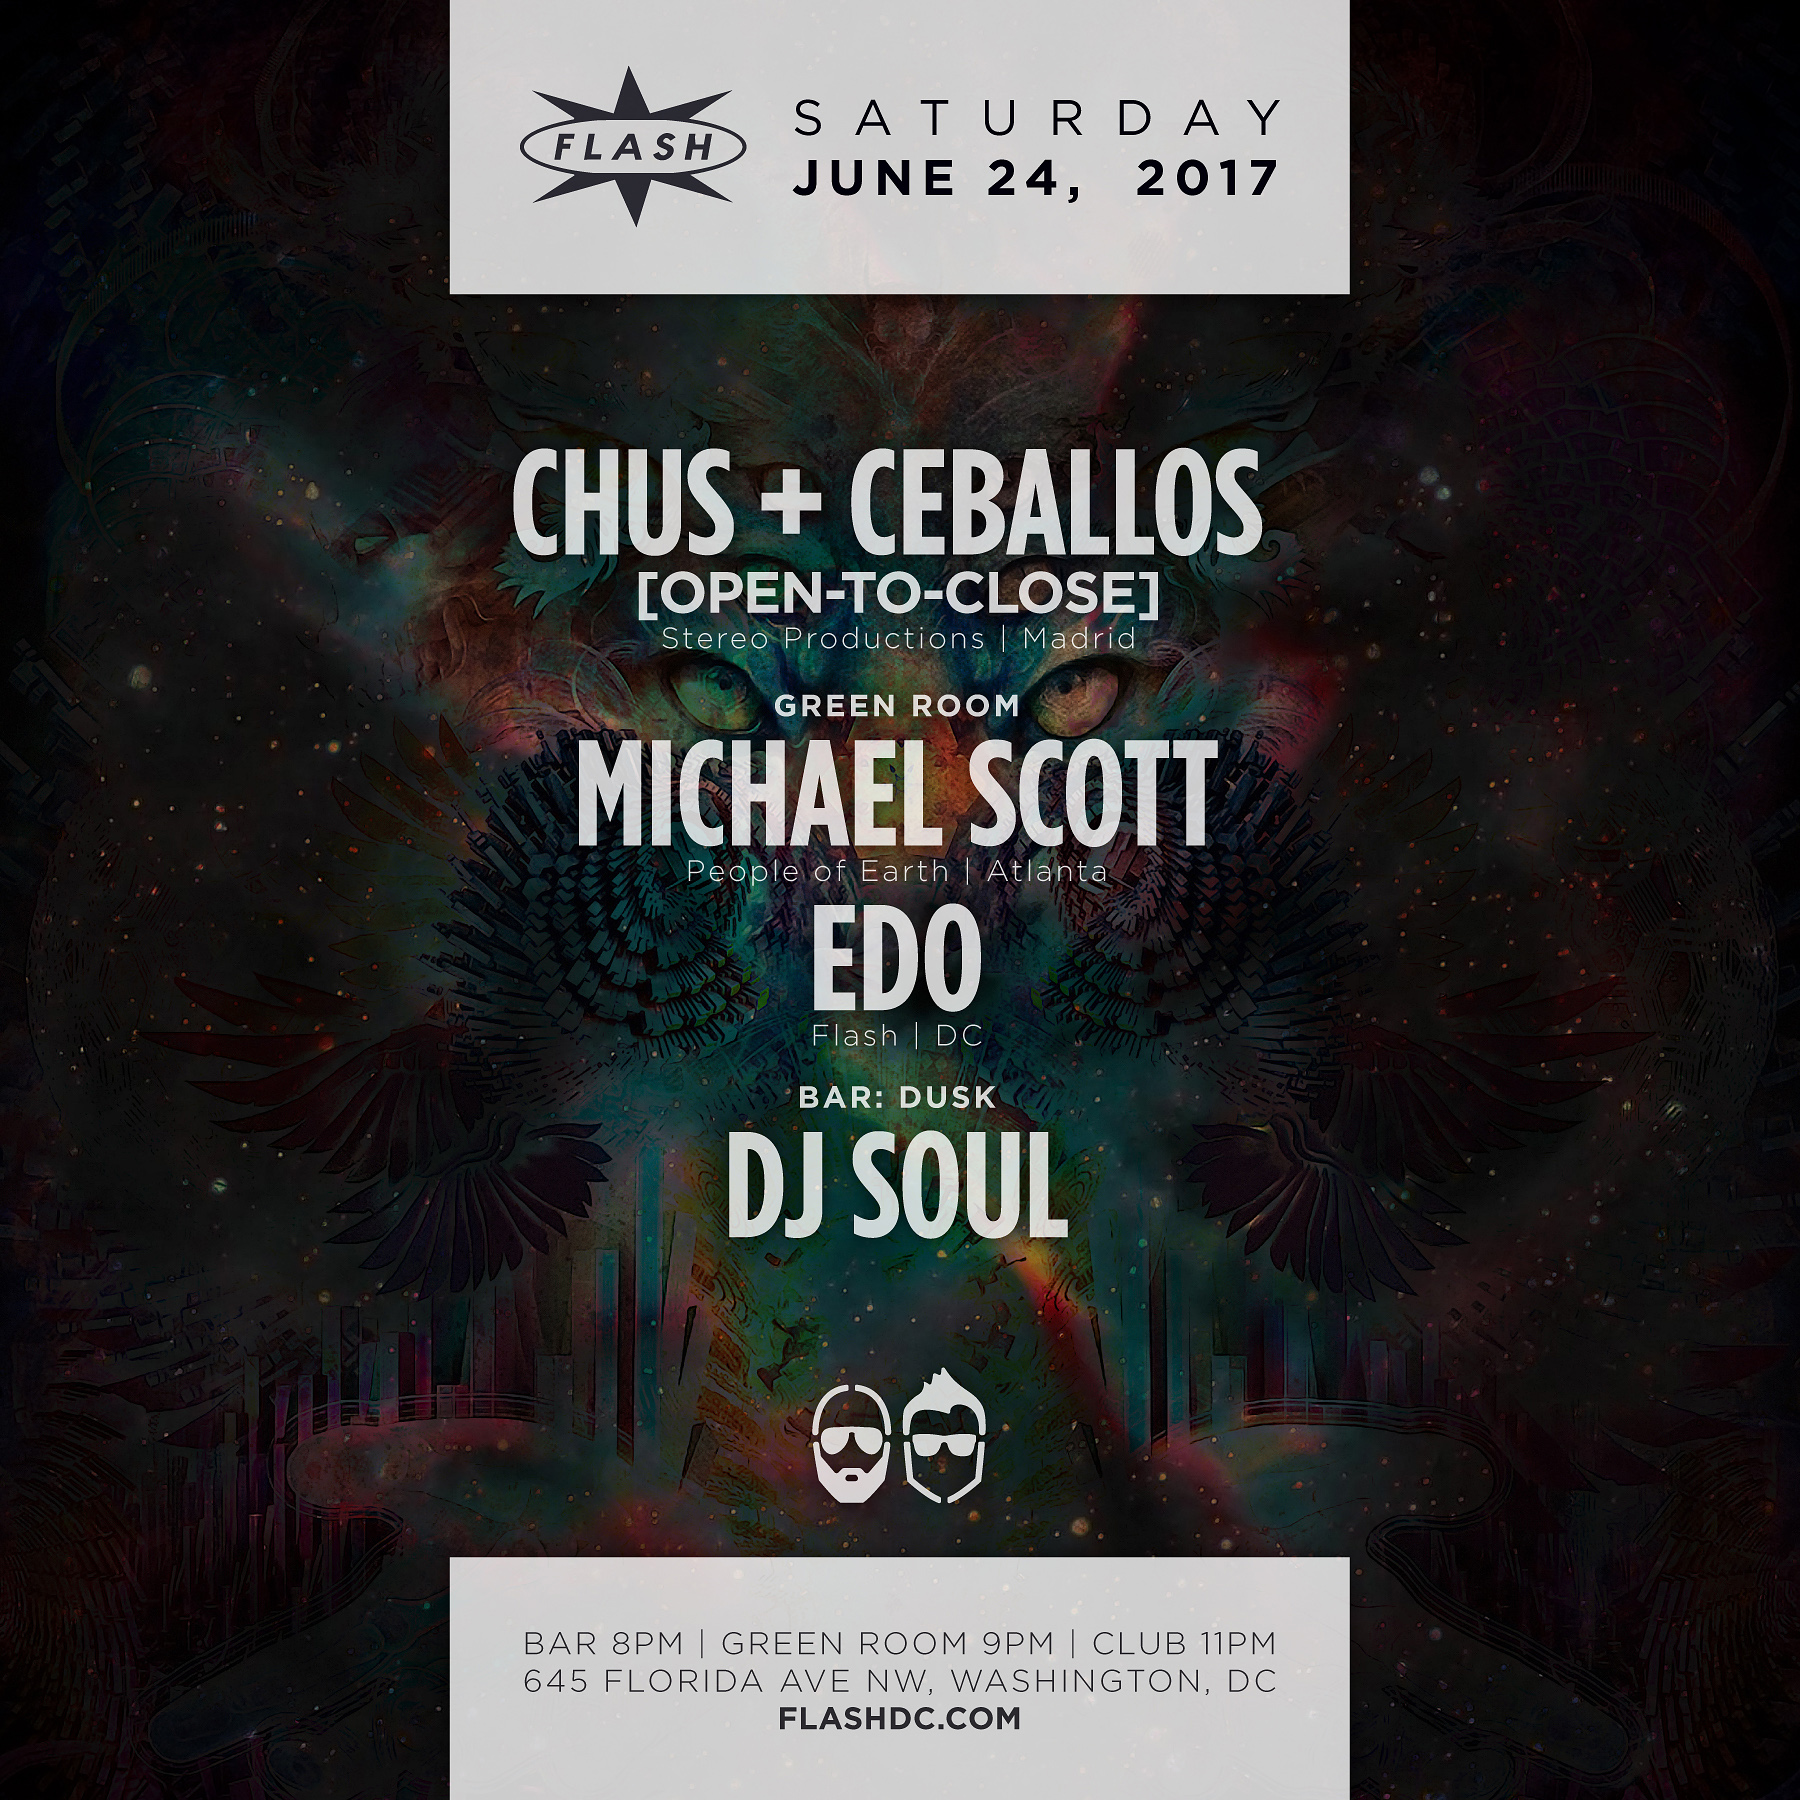 Chus & Ceballos [open-to-close] - Michael Scott - Edo - Dusk event thumbnail